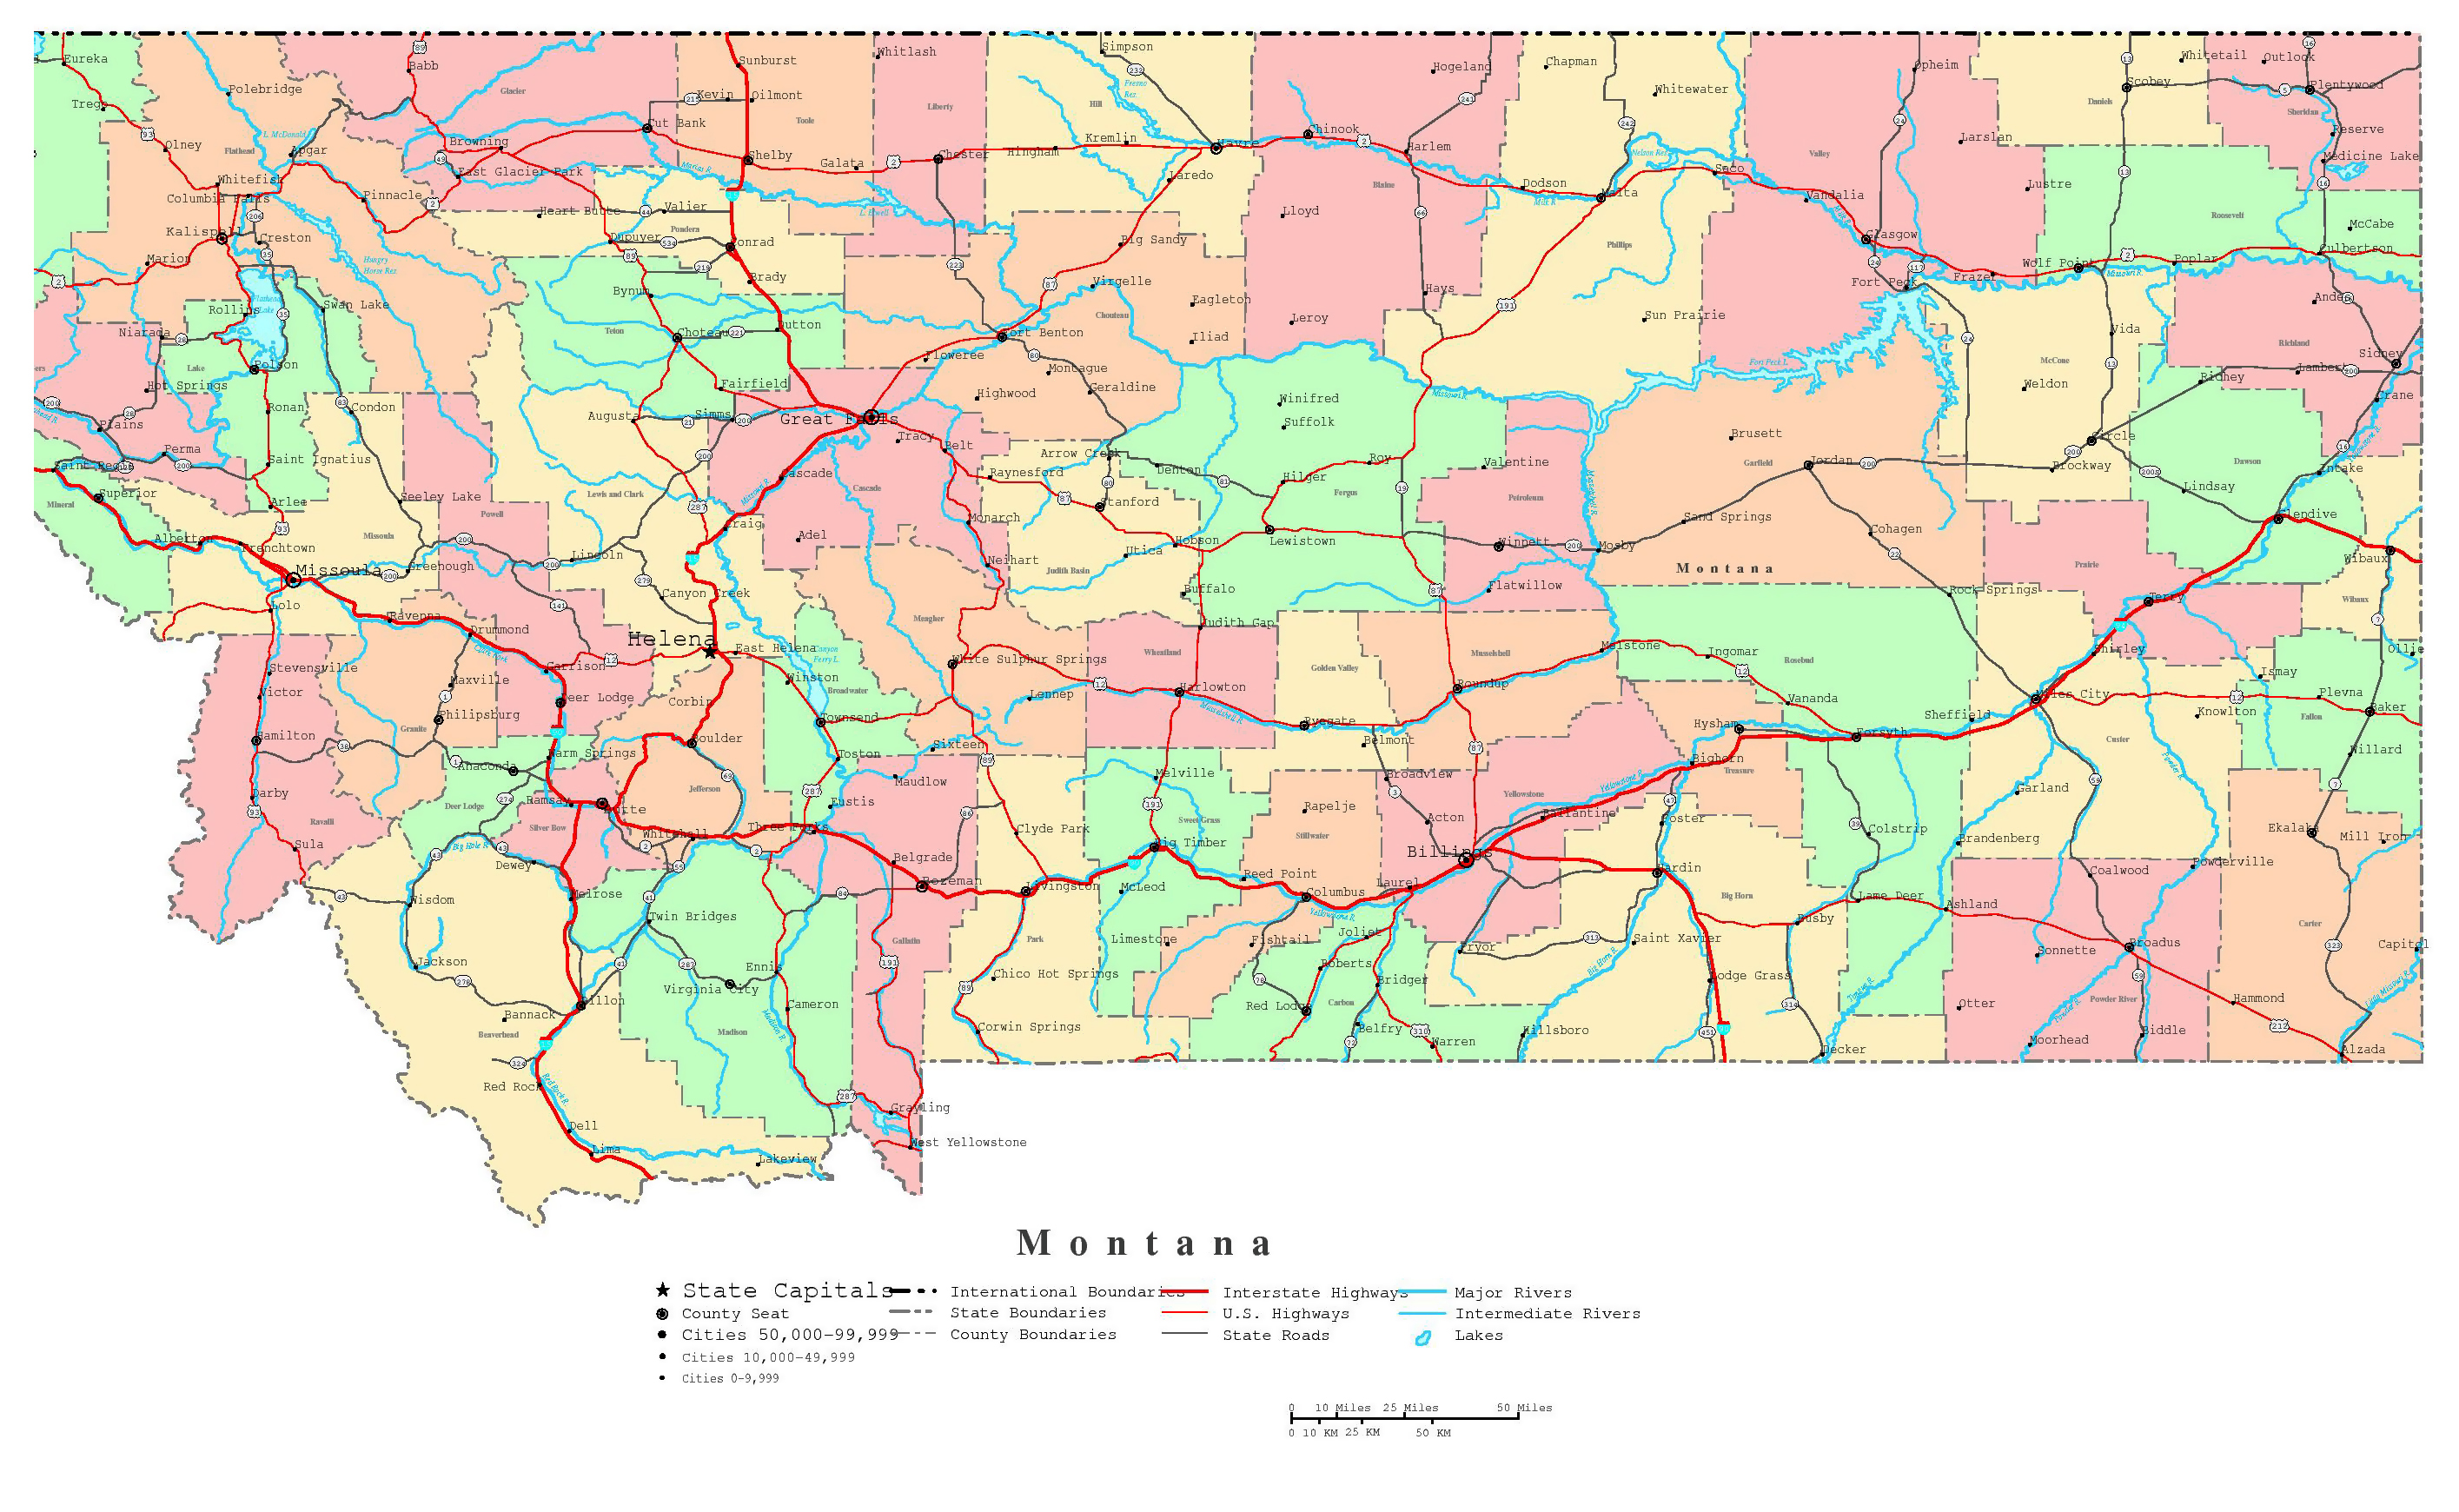 Large Detailed Administrative Map Of Montana State With Roads - Detailed usa map with states and cities